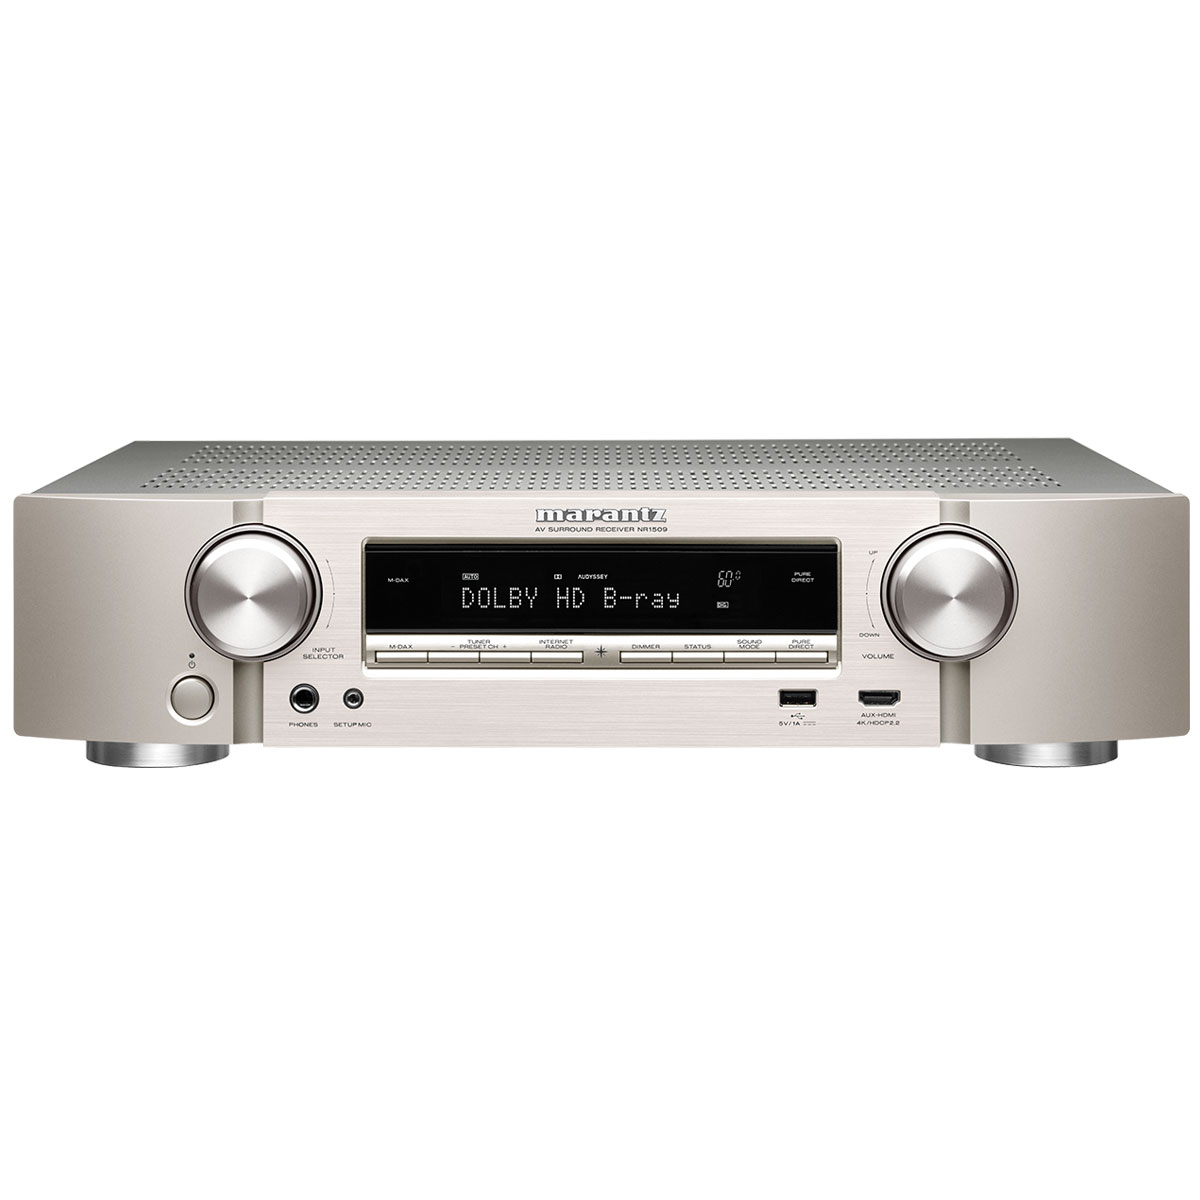 Ampli home cinéma Marantz NR1509 Argent/Or Ampli-tuner Home Cinema Slim 3D Ready 5.2 - Dolby TrueHD / DTS-HD Master Audio - 6x HDMI 4K UHD, HDCP 2.2, HDR - Multiroom - Wi-Fi/Bluetooth/AirPlay 2 - Amazon Alexa